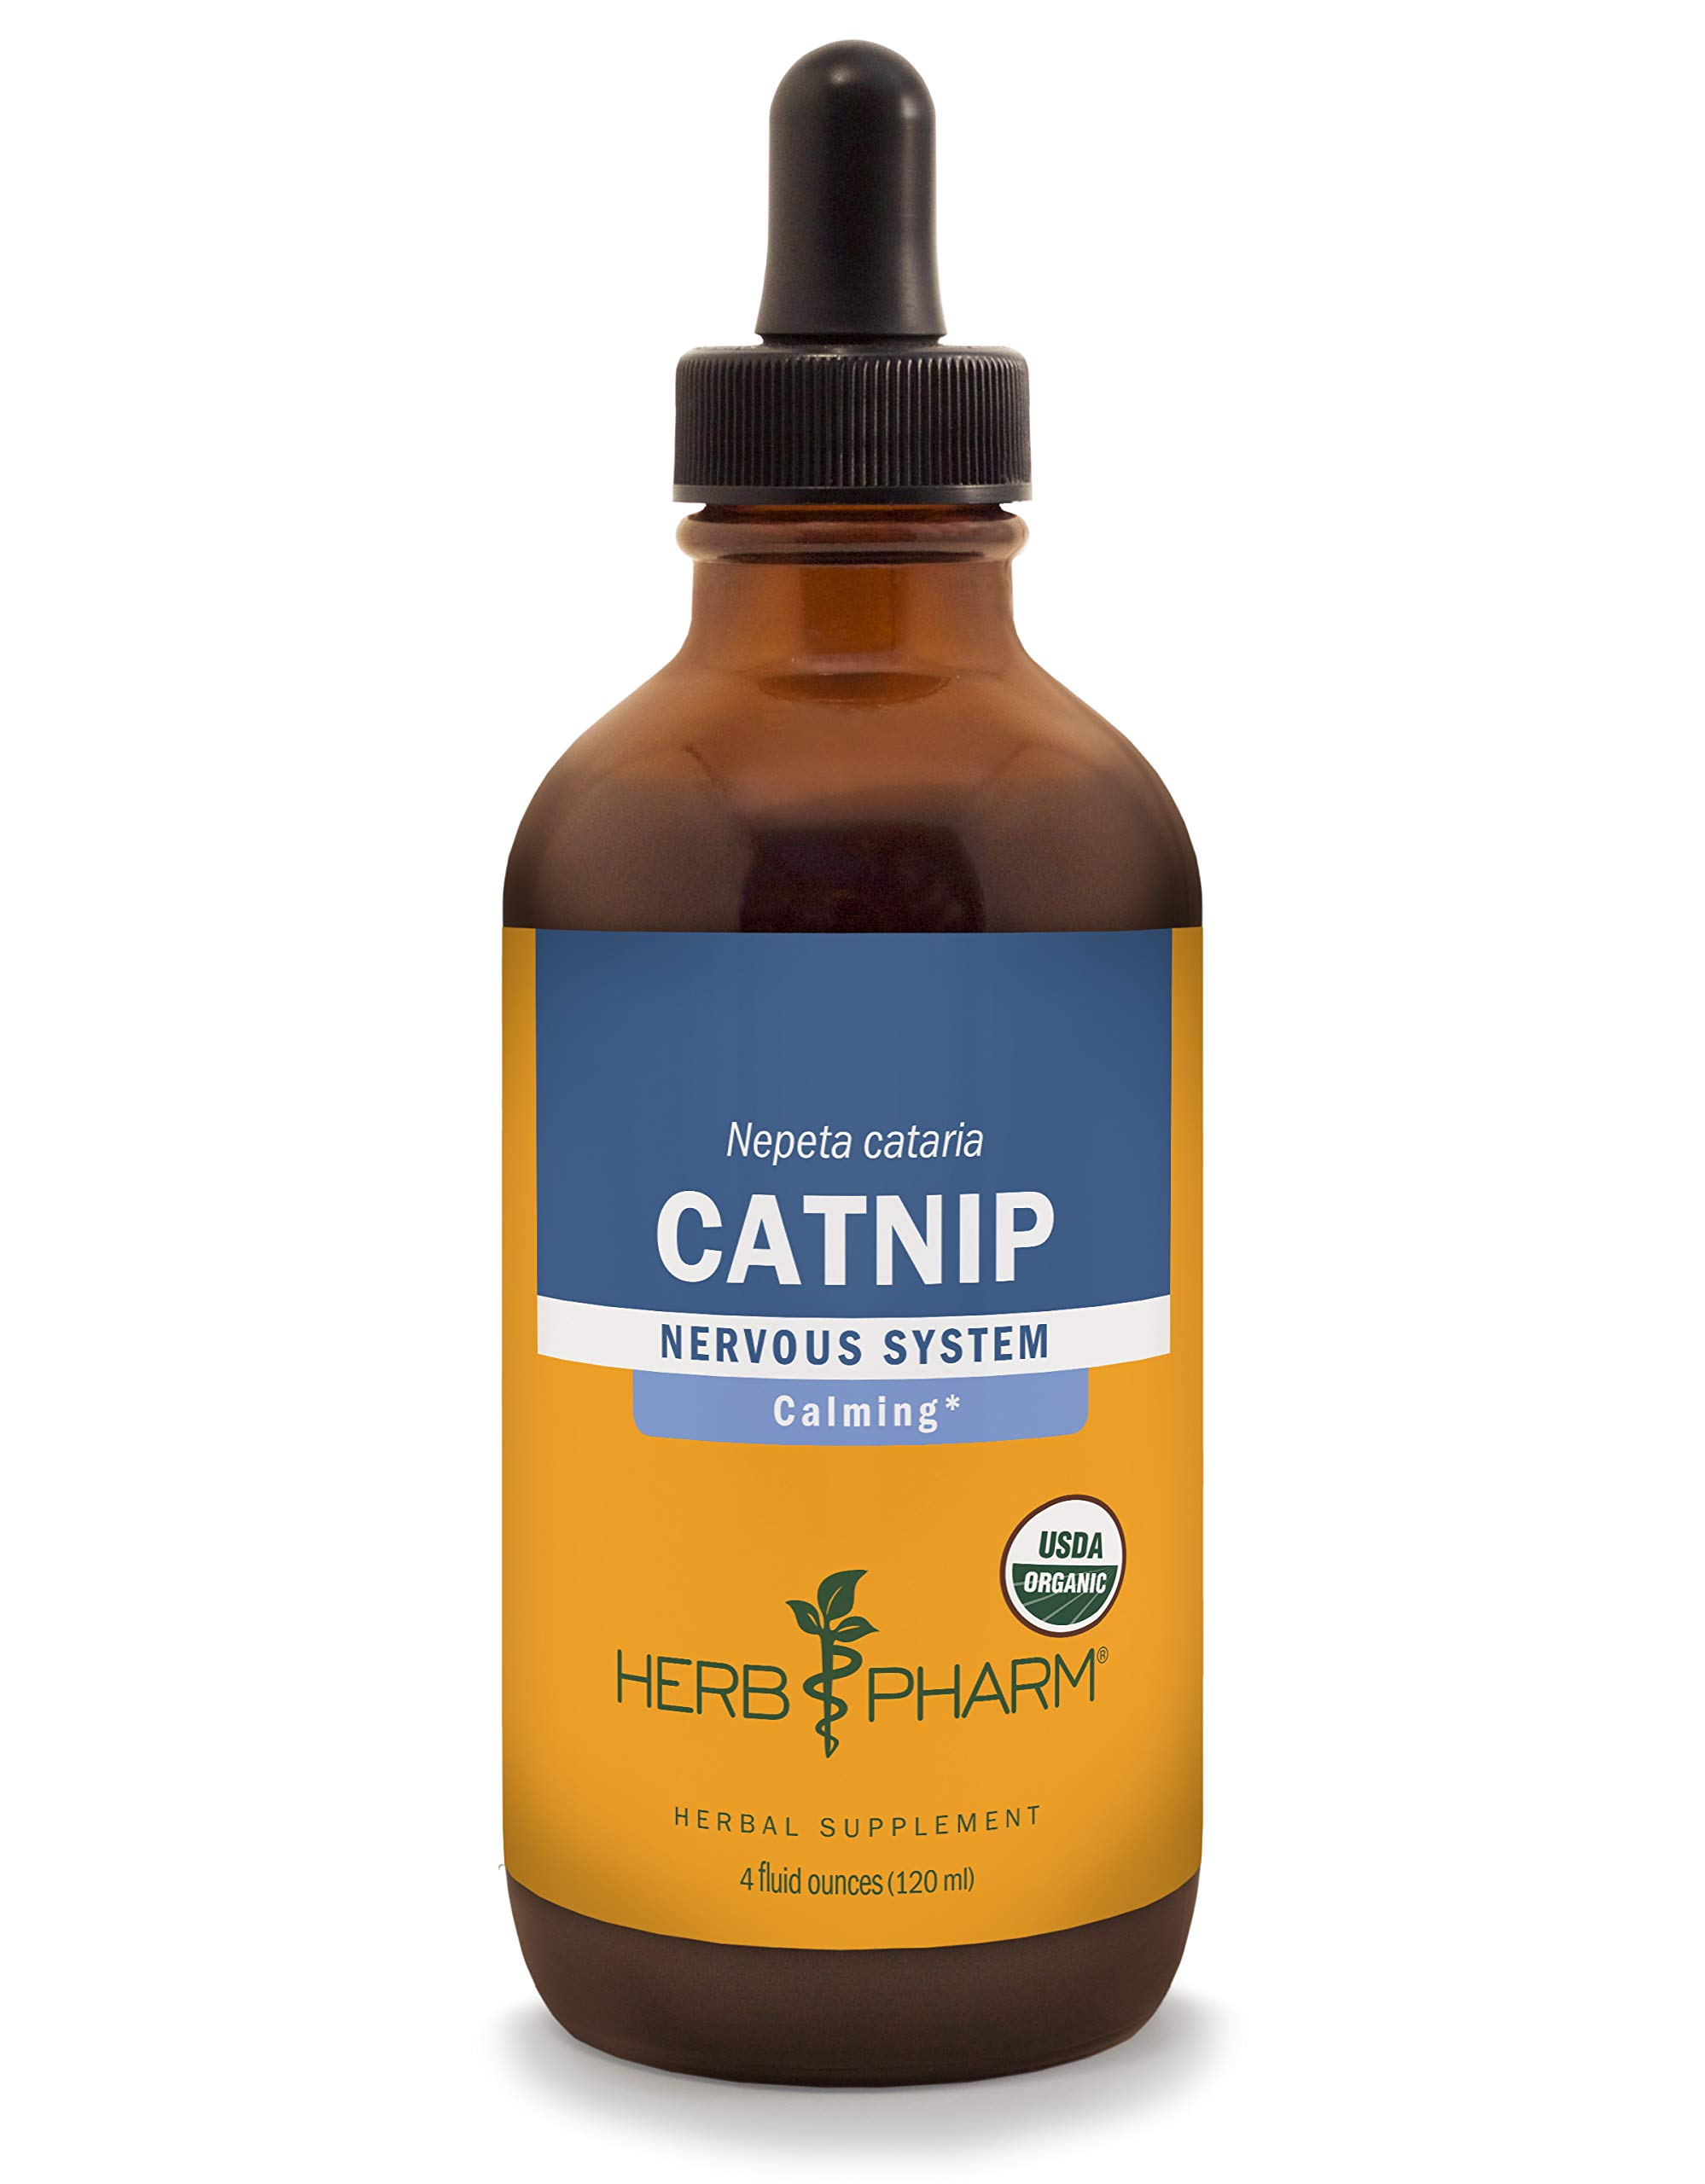 Herb Pharm Certified Organic Catnip Liquid Extract for Calming Nervous System Support - 4 Ounce